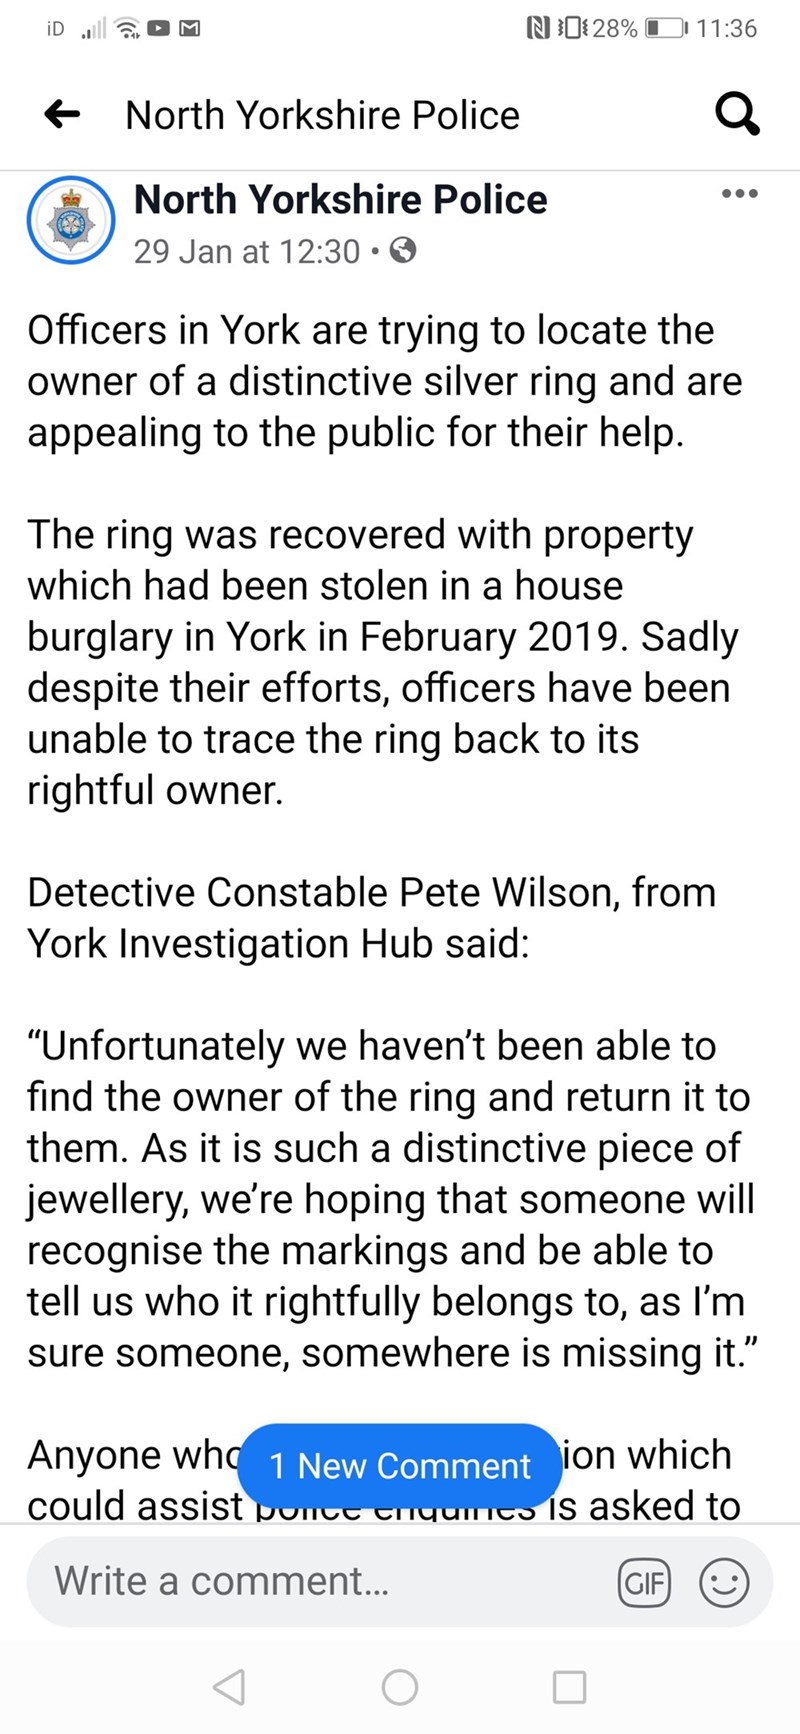 """Text - N0:28% 11:36 iD ull + North Yorkshire Police North Yorkshire Police 29 Jan at 12:30 • Officers in York are trying to locate the owner of a distinctive silver ring and are appealing to the public for their help. The ring was recovered with property which had been stolen in a house burglary in York in February 2019. Sadly despite their efforts, officers have been unable to trace the ring back to its rightful owner. Detective Constable Pete Wilson, from York Investigation Hub said: """"Unfortun"""